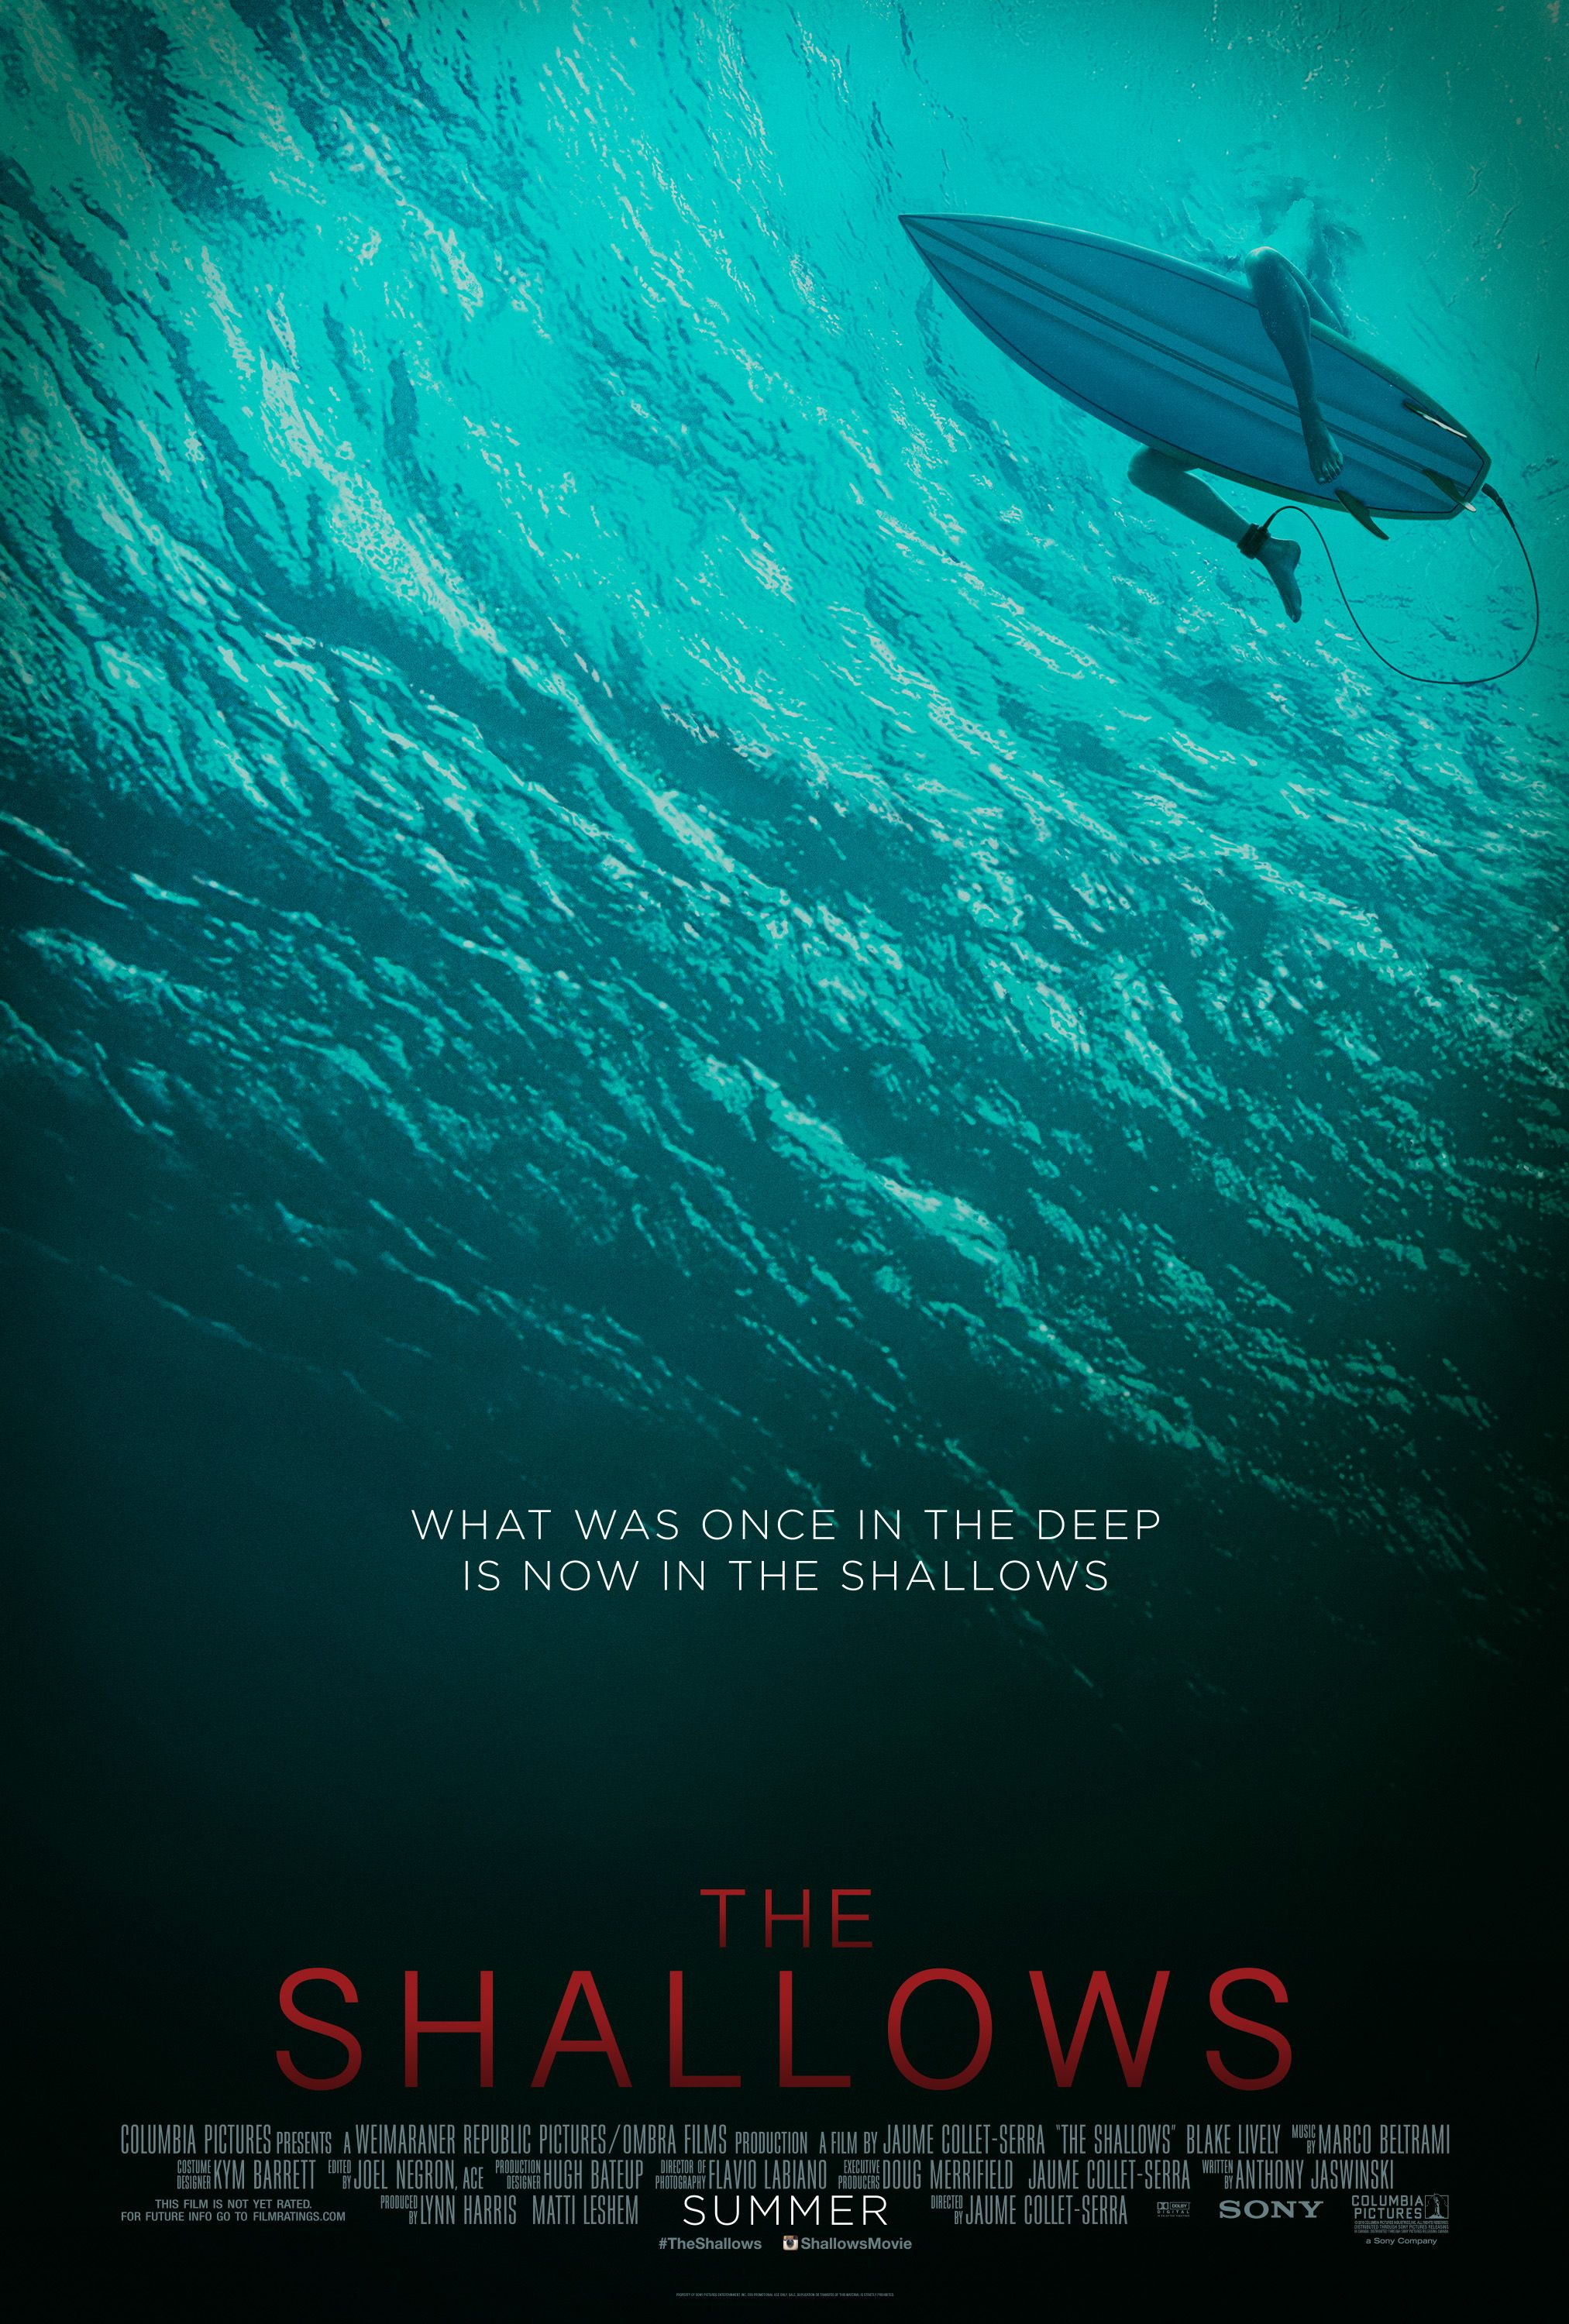 The Shallows Starring Blake Lively In Theaters June 24 2016